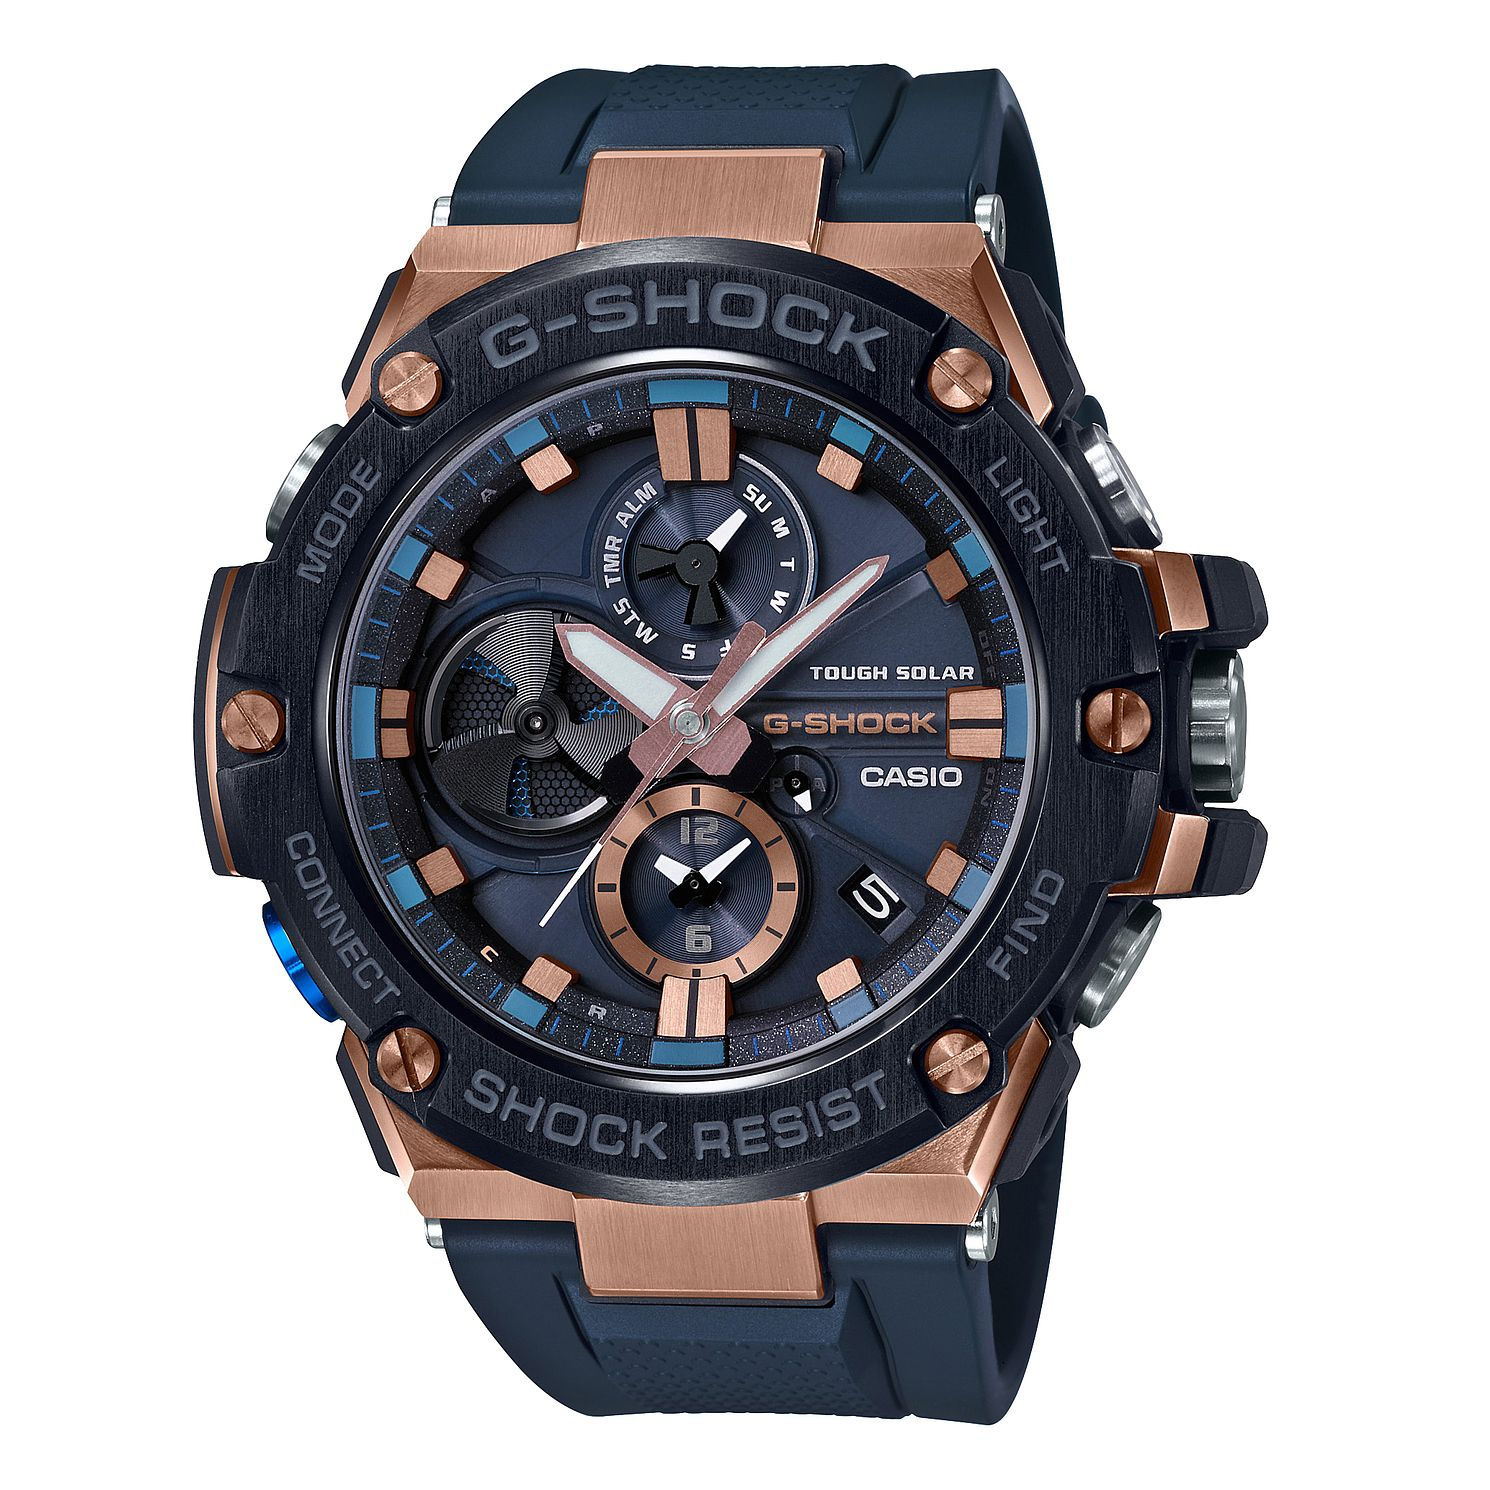 Casio G-Shock G-Steel Men's Black Rubber Strap Watch - Product number 2962829